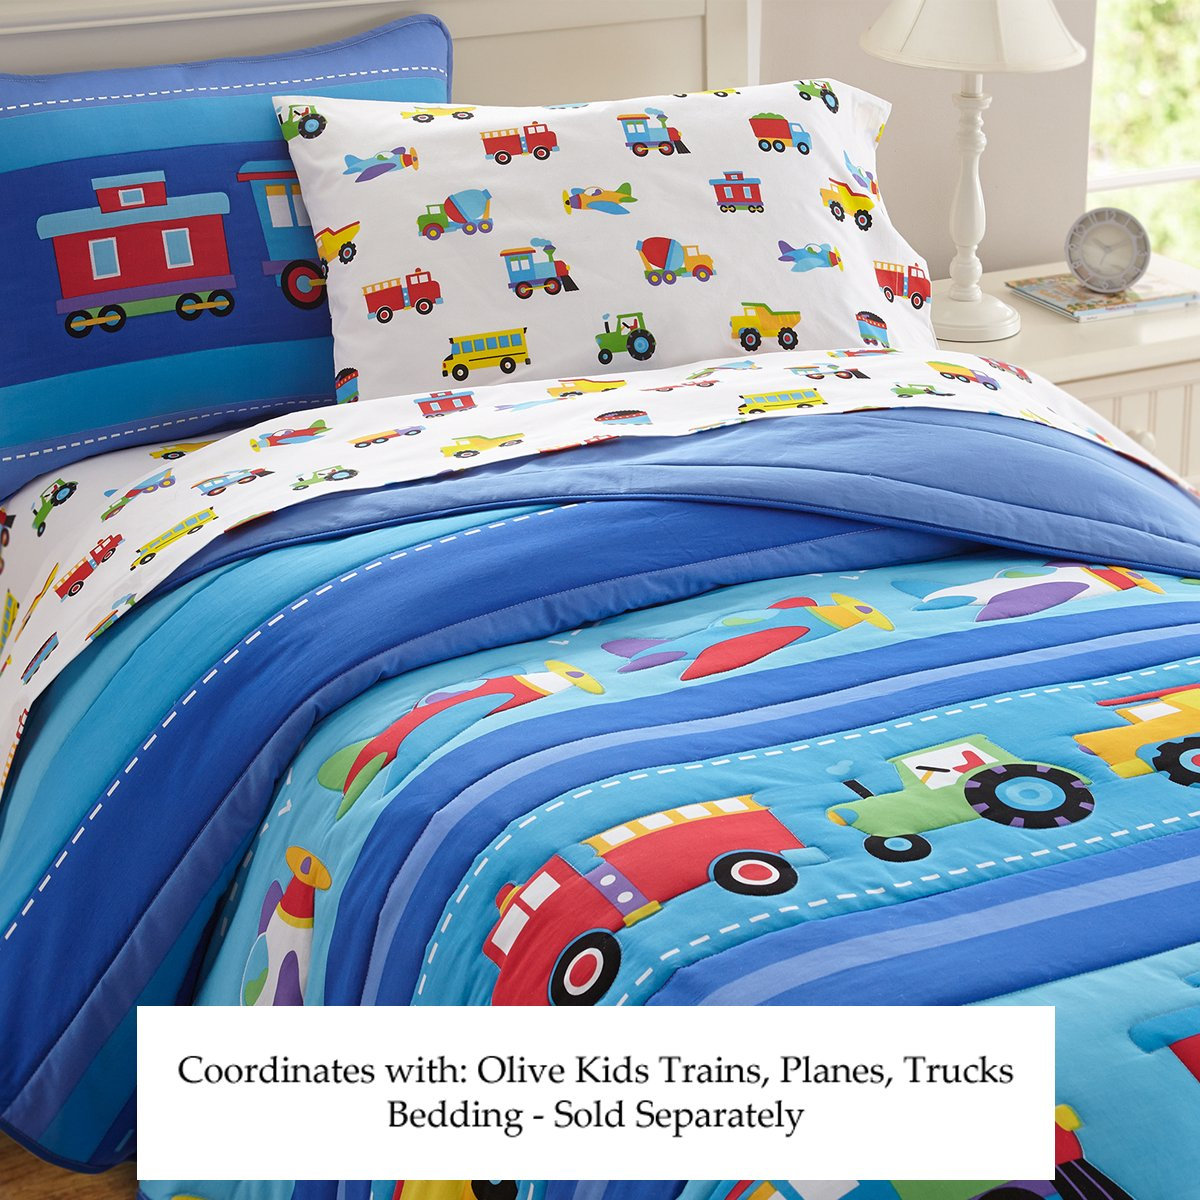 Olive Kids Trains, Planes, Trucks Table & Chair Set by Olive Kids (Image #4)